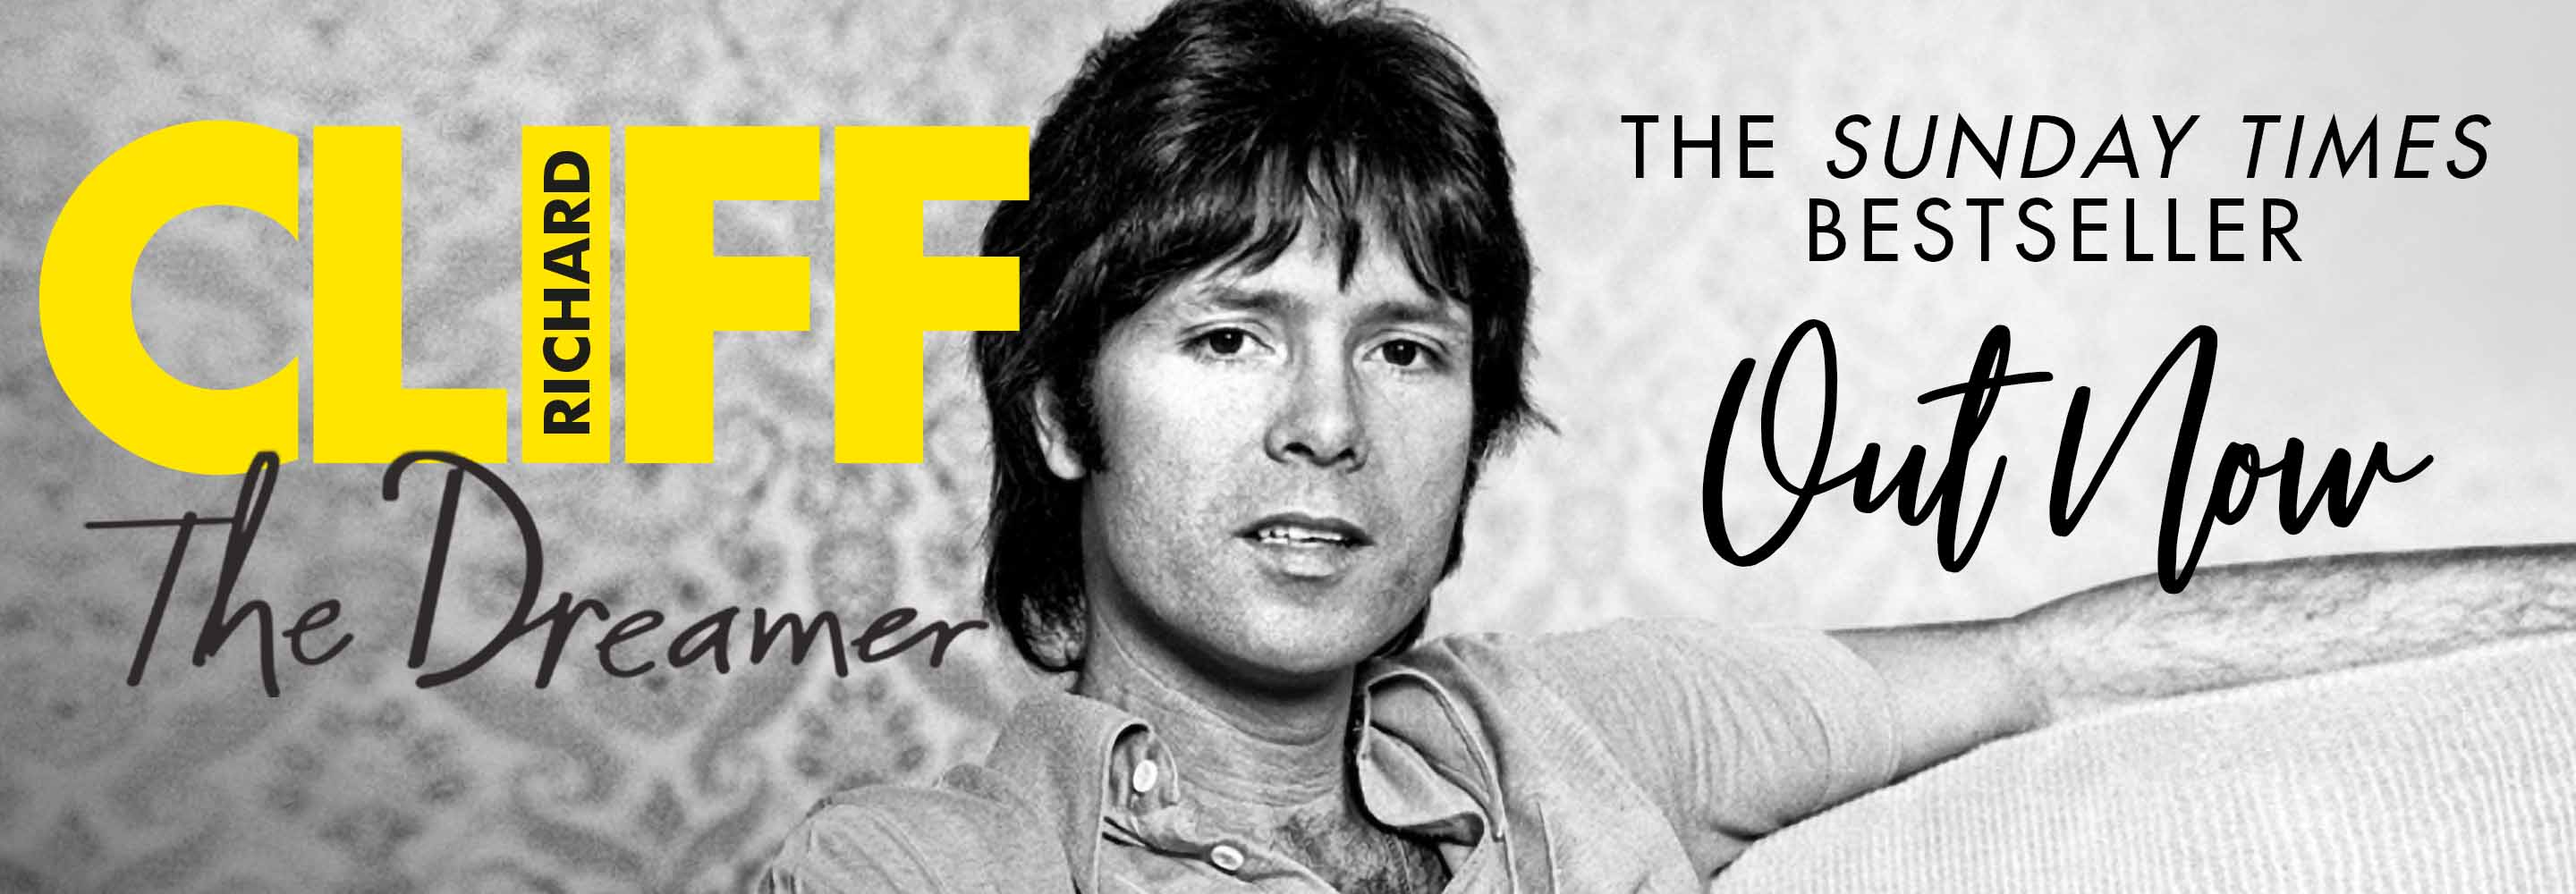 Cliff Richard - The Dreamer - Autobiography